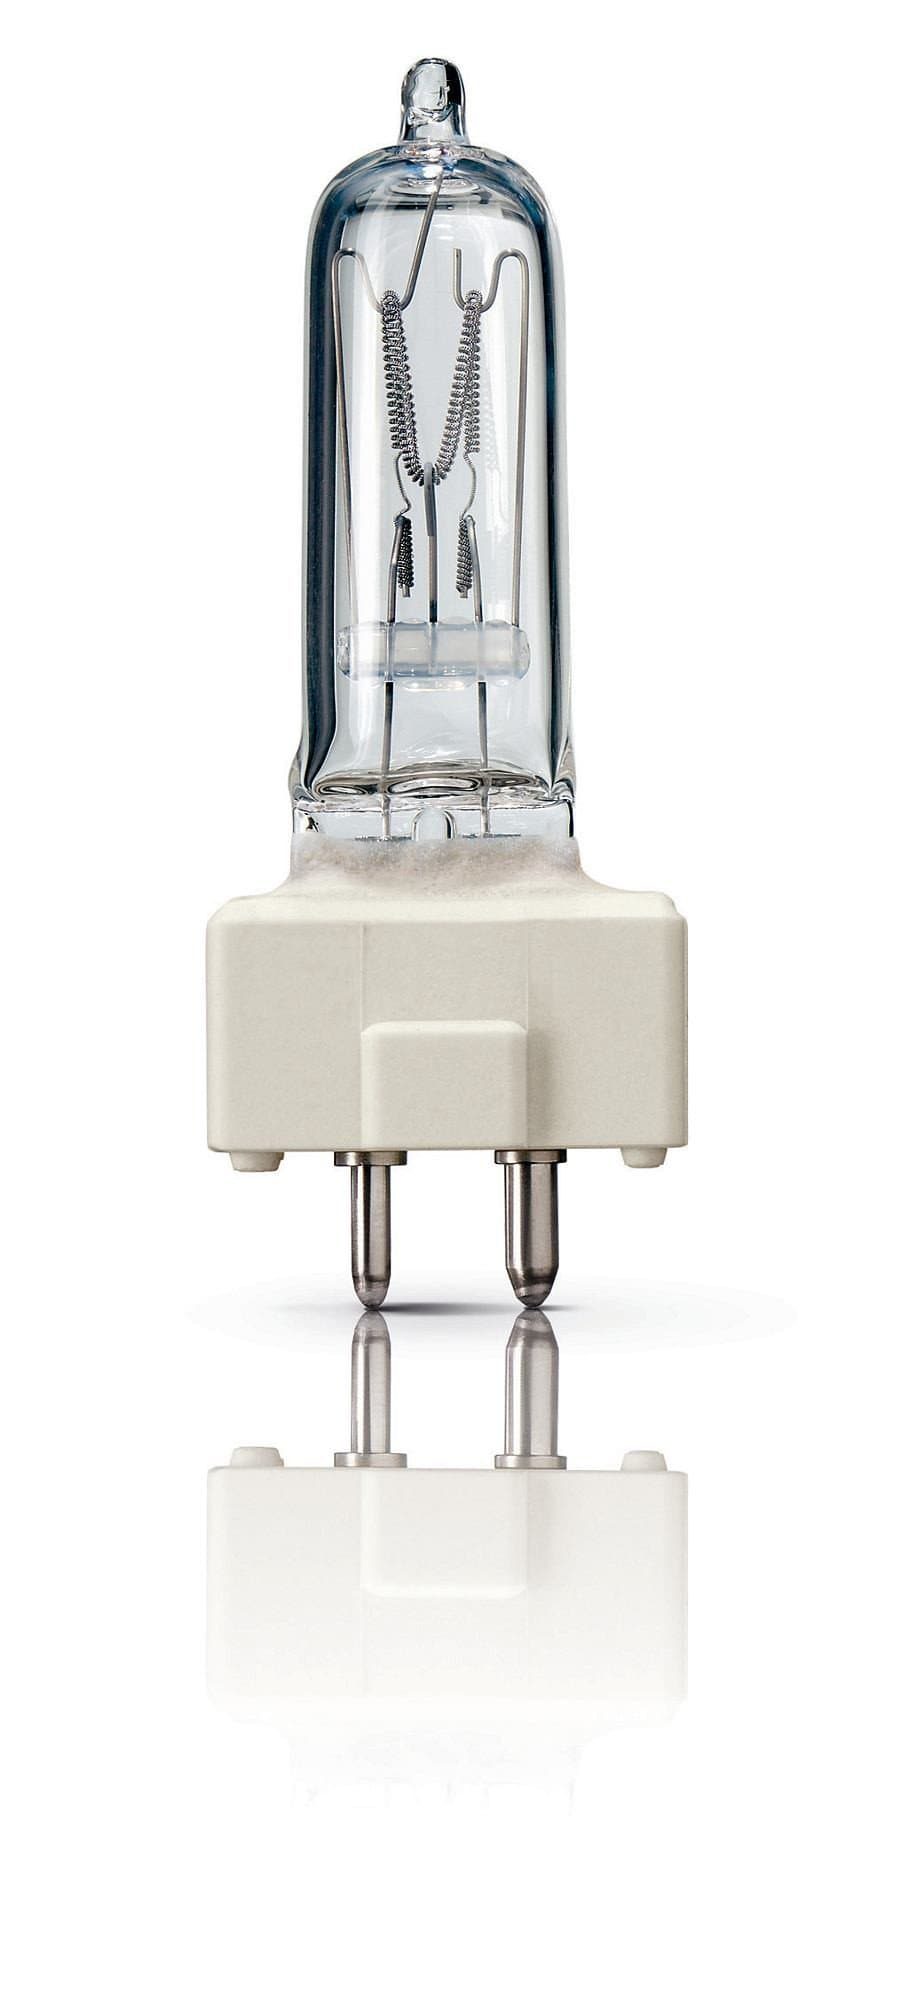 Philips 500w 230v FRH 6873P GY9.5 3200K Halogen Light Bulb